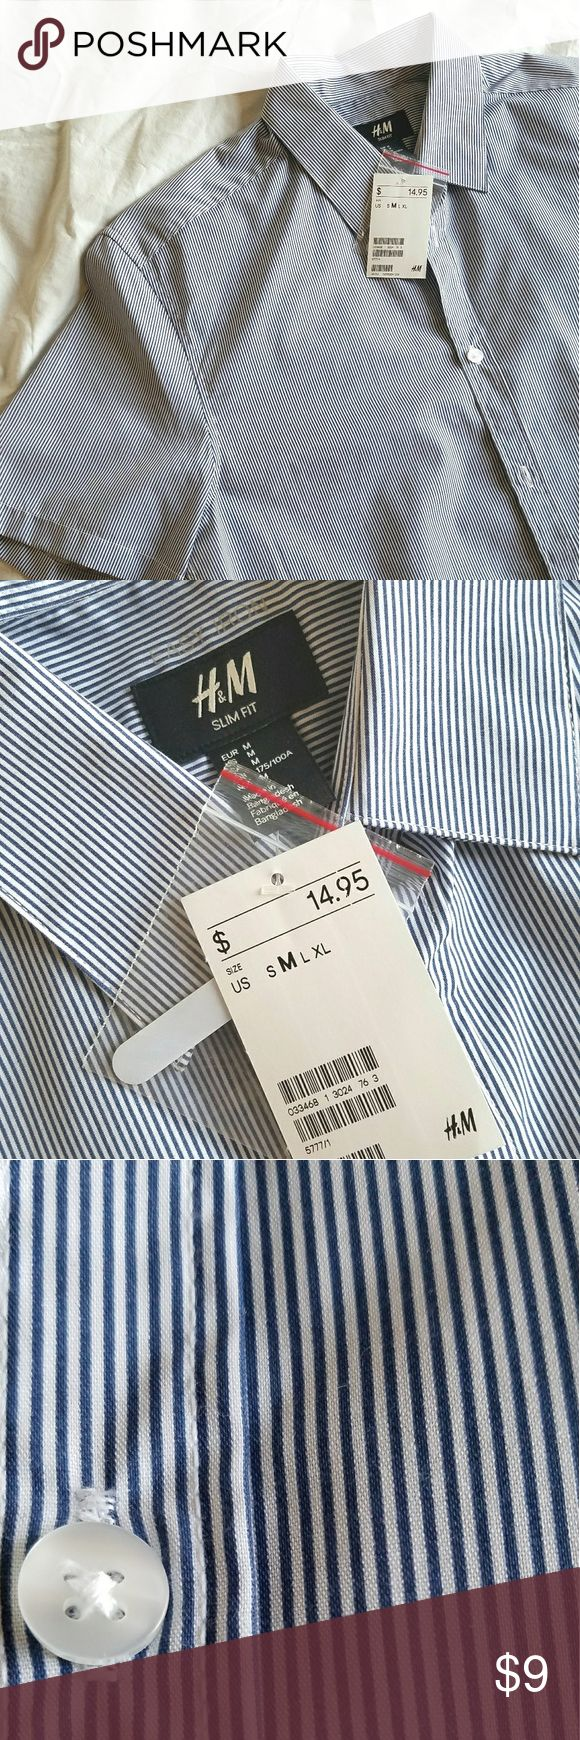 NWT H&M Men's Slim Fit Short Sleeve Button Down NWT H&M short sleeve slim fit button down. Blue and white striped, easy iron, medium. H&M Shirts Casual Button Down Shirts